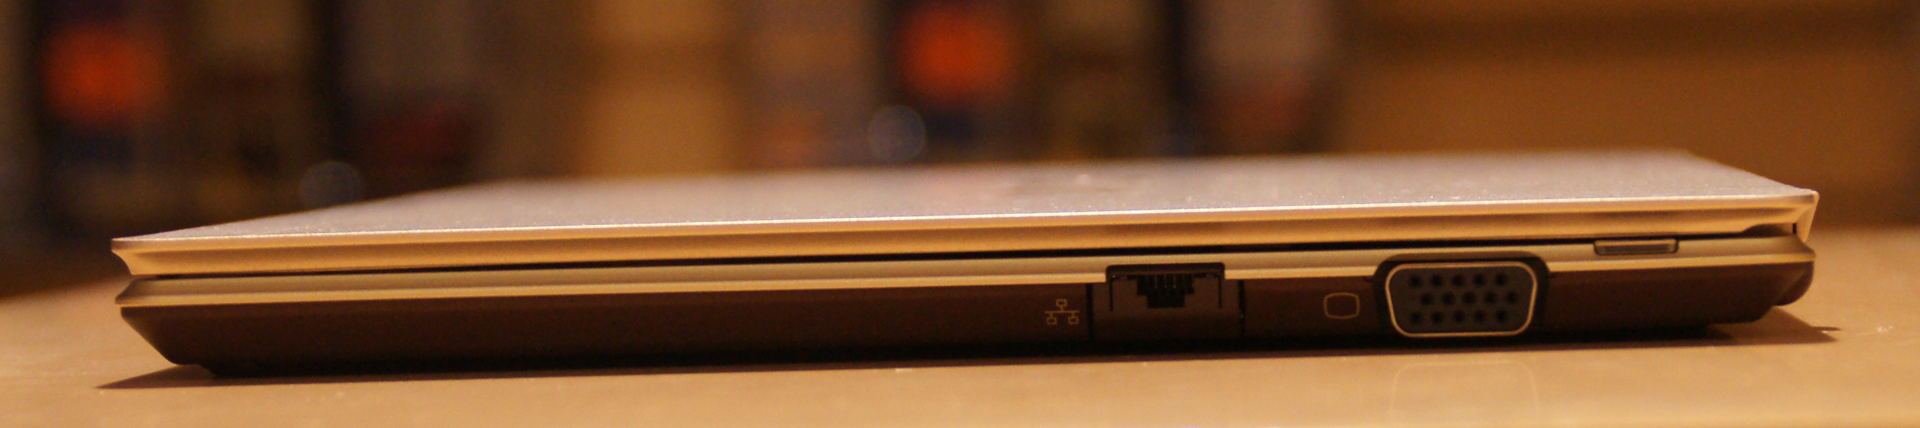 Hands-on With The Champagne Sony VAIO X Series Notebook